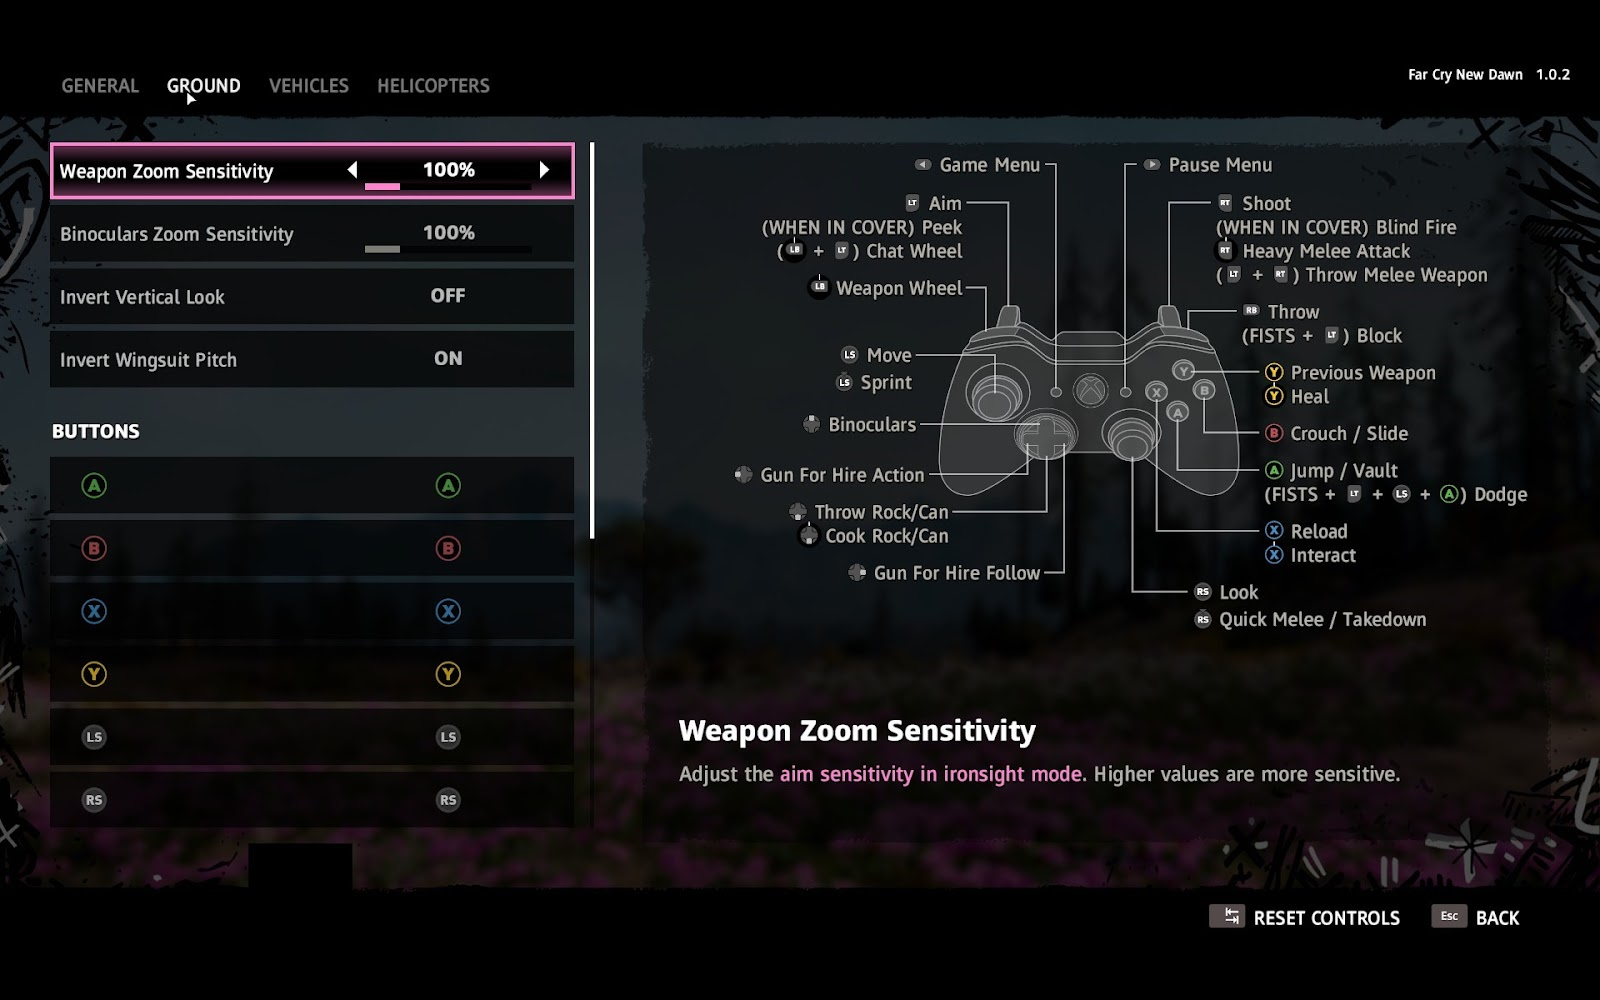 Gamepad sensitivity options and button remapping with a scheme of the controls layout